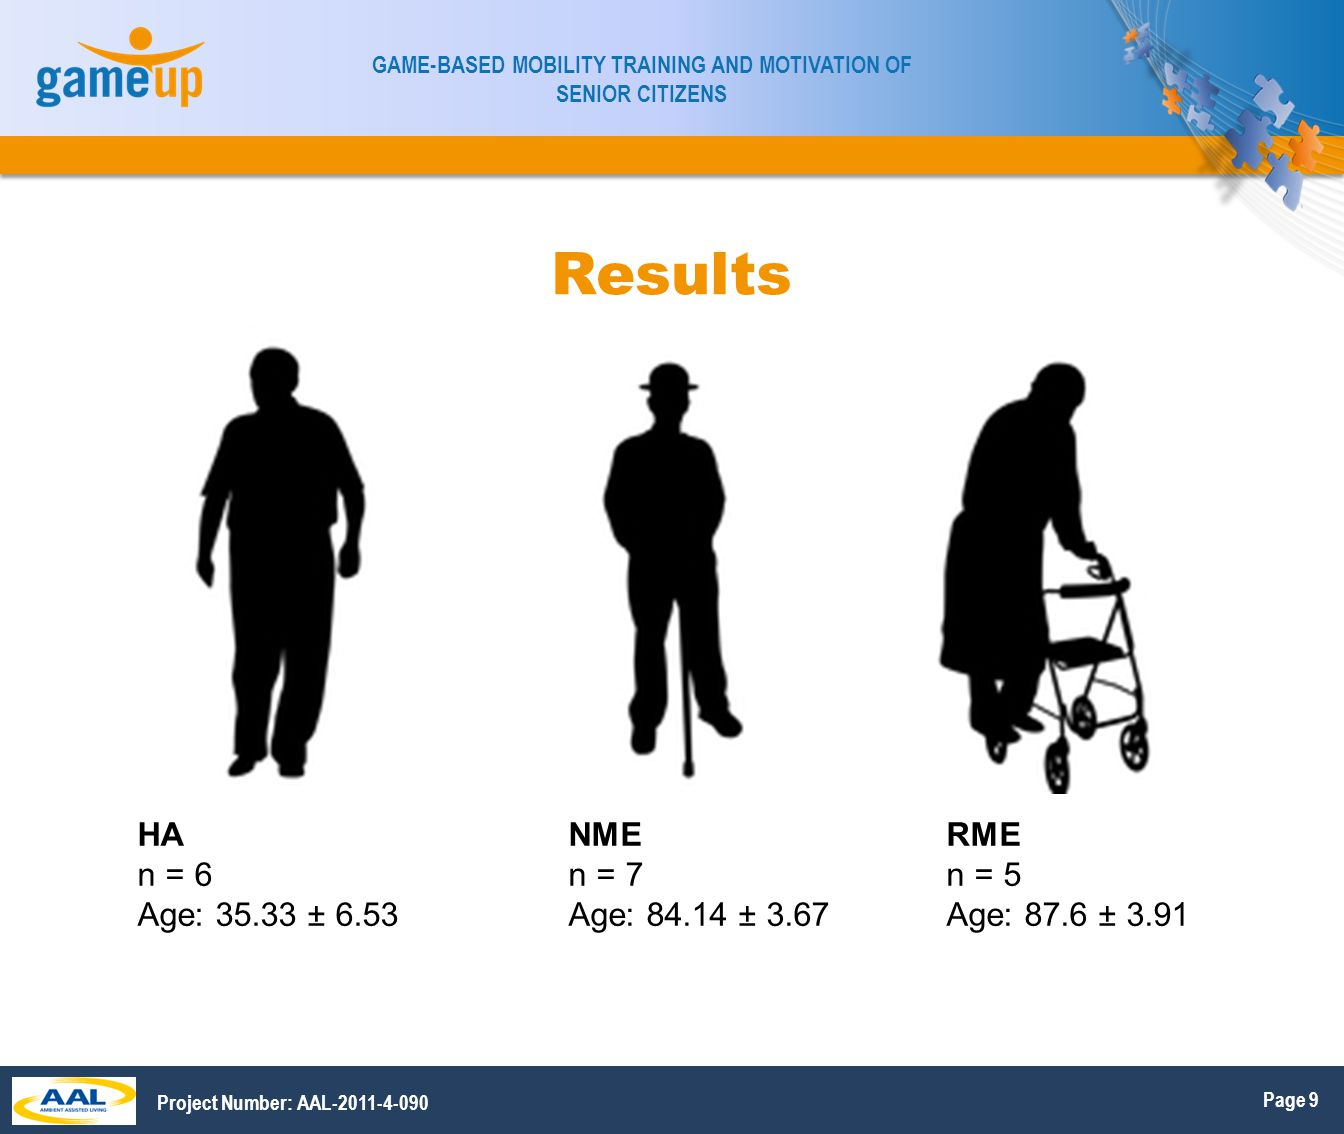 Page 10 GAME-BASED MOBILITY TRAINING AND MOTIVATION OF SENIOR CITIZENS Project Number: AAL-2011-4-090 Results POMA gait score 12 indicates max HA = 11.83 ± 0.41 NME = 9.14 ± 0.9 RME = 5 ± 1.58 p < 0.05 Time to complete 20m/avg.